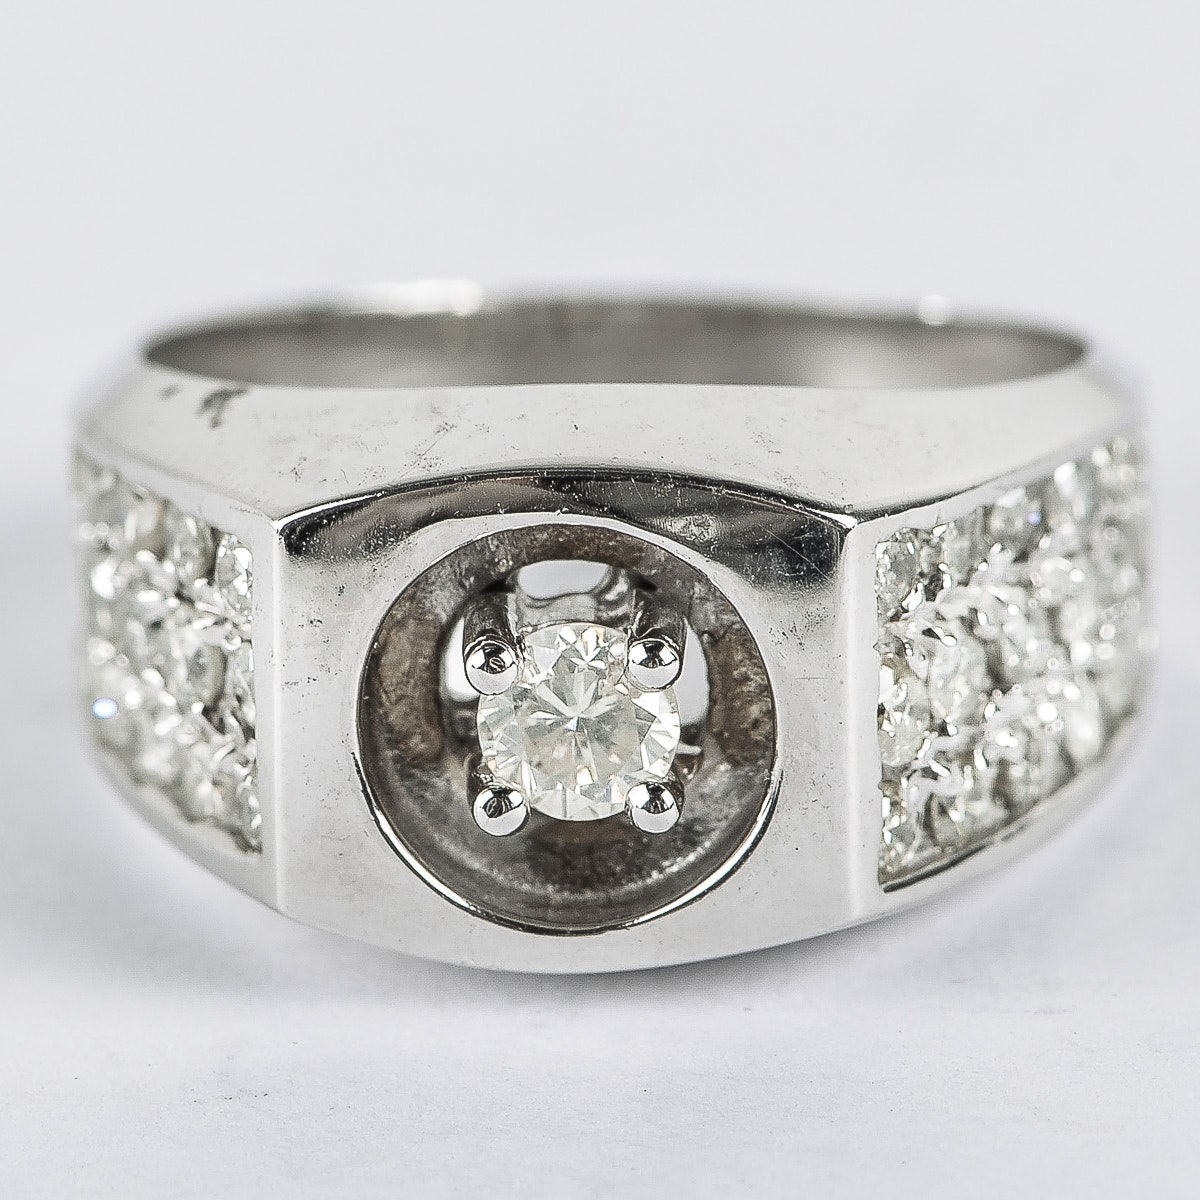 Men's 14K White Gold and 1.70 CTW Diamond Flat Top Ring